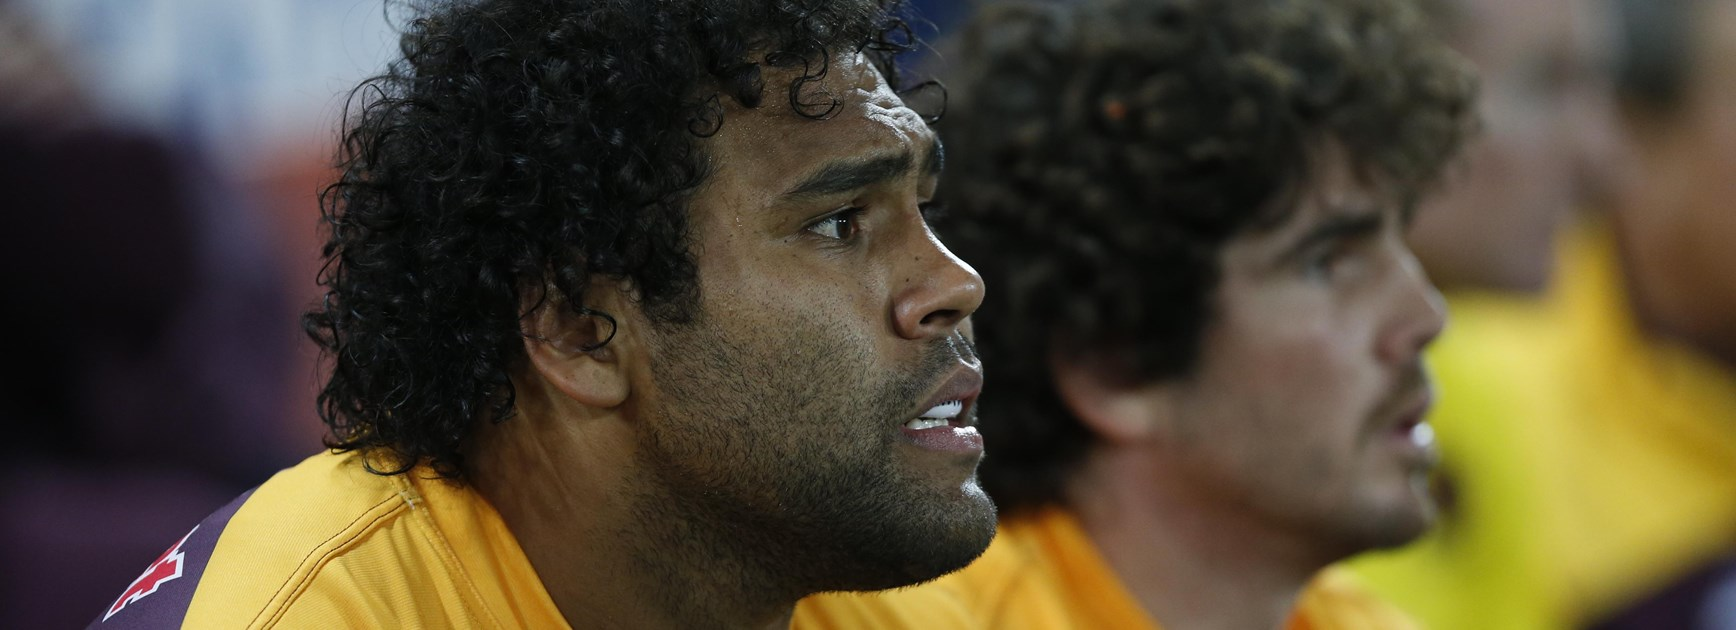 January 10: Thaiday gives up Broncos captaincy; Daley honoured